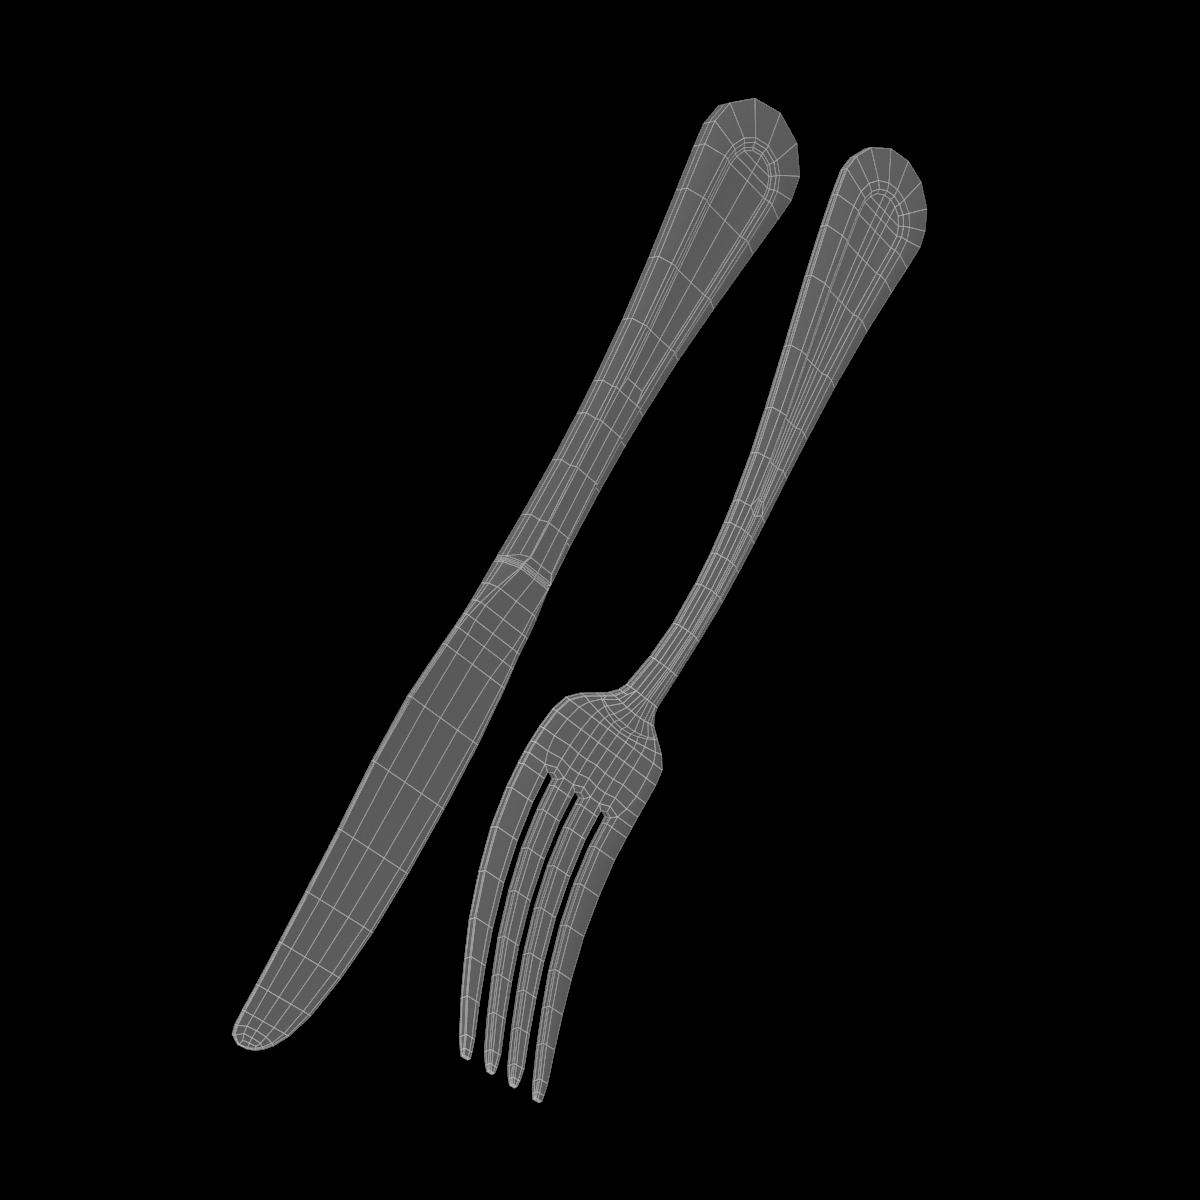 table dinner knife and fork classic cutlery 3d model 3ds max fbx c4d ma mb obj 284038